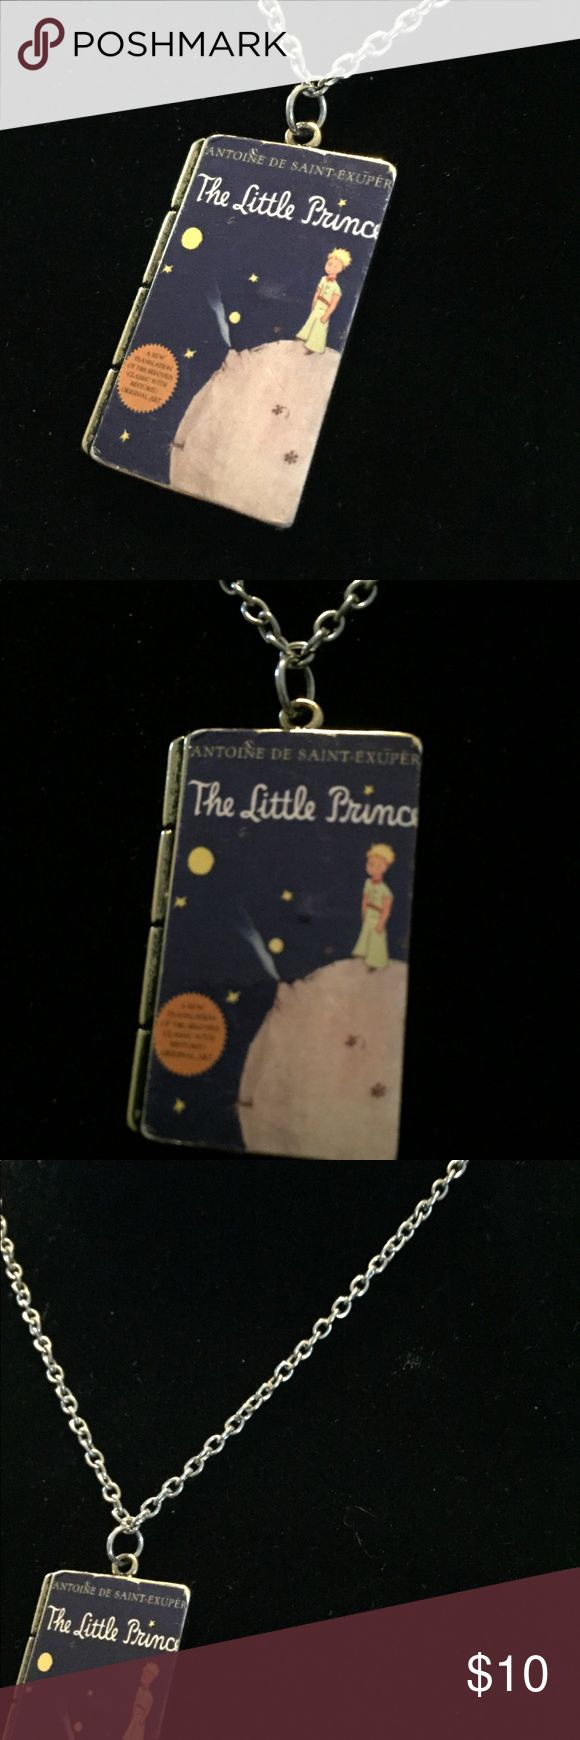 "Cult Of Personality, The Little Prince Necklace Cult Of Personality, The Little Prince Necklace. The Pendant On This Necklace Is The Cover From Antoine De Saint Exupery's The Little Prince, In Full Color.    It's Set On A Metal Base.  The Pendant Measures 1.5"" Long x 1"" Wide.  The Necklace Chain Measures 22"" And Is Fully Adjustable To Any Size.  Lobster Clasp.  New With Tags.  Four of these are currently available. Emporiama's Cult Of Personality Jewelry Necklaces"